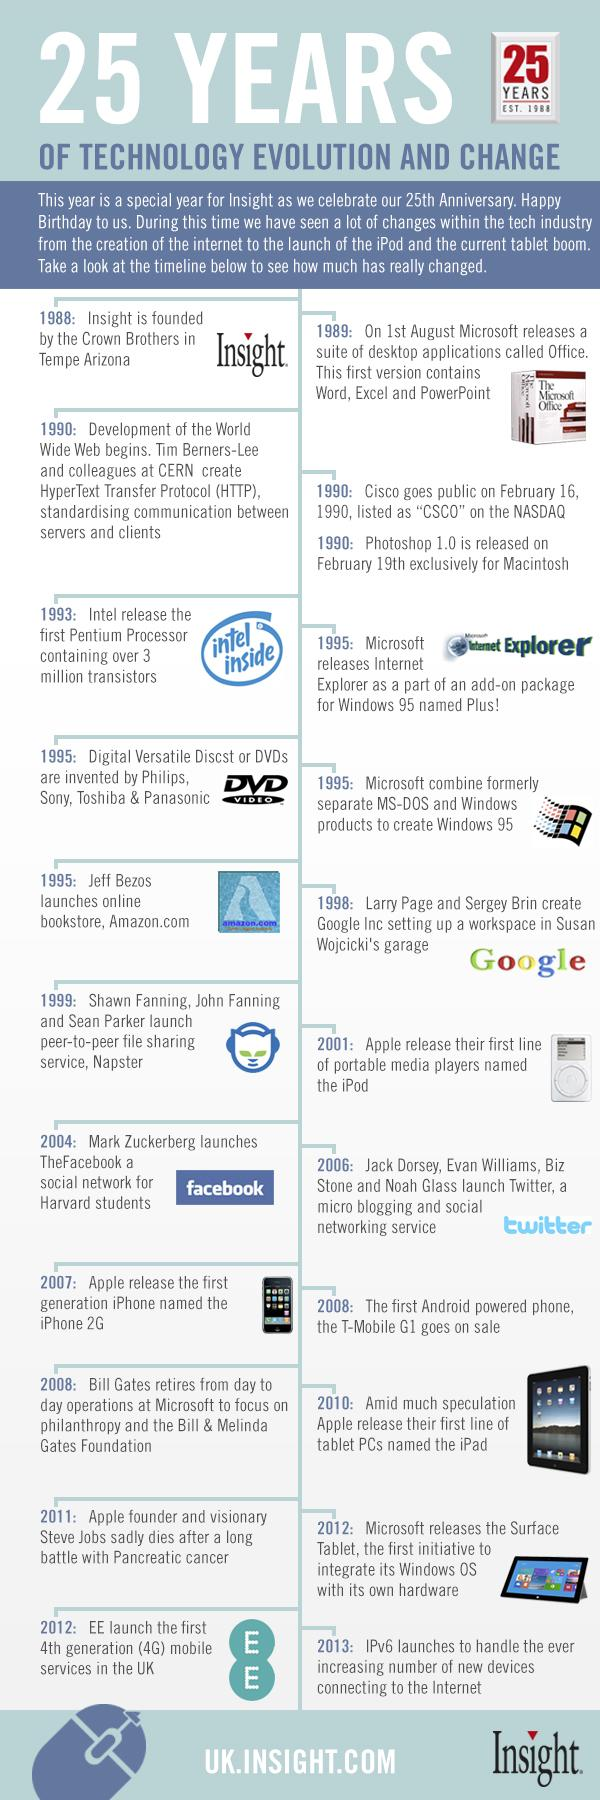 25 years of technology evolution and change (Infographic)